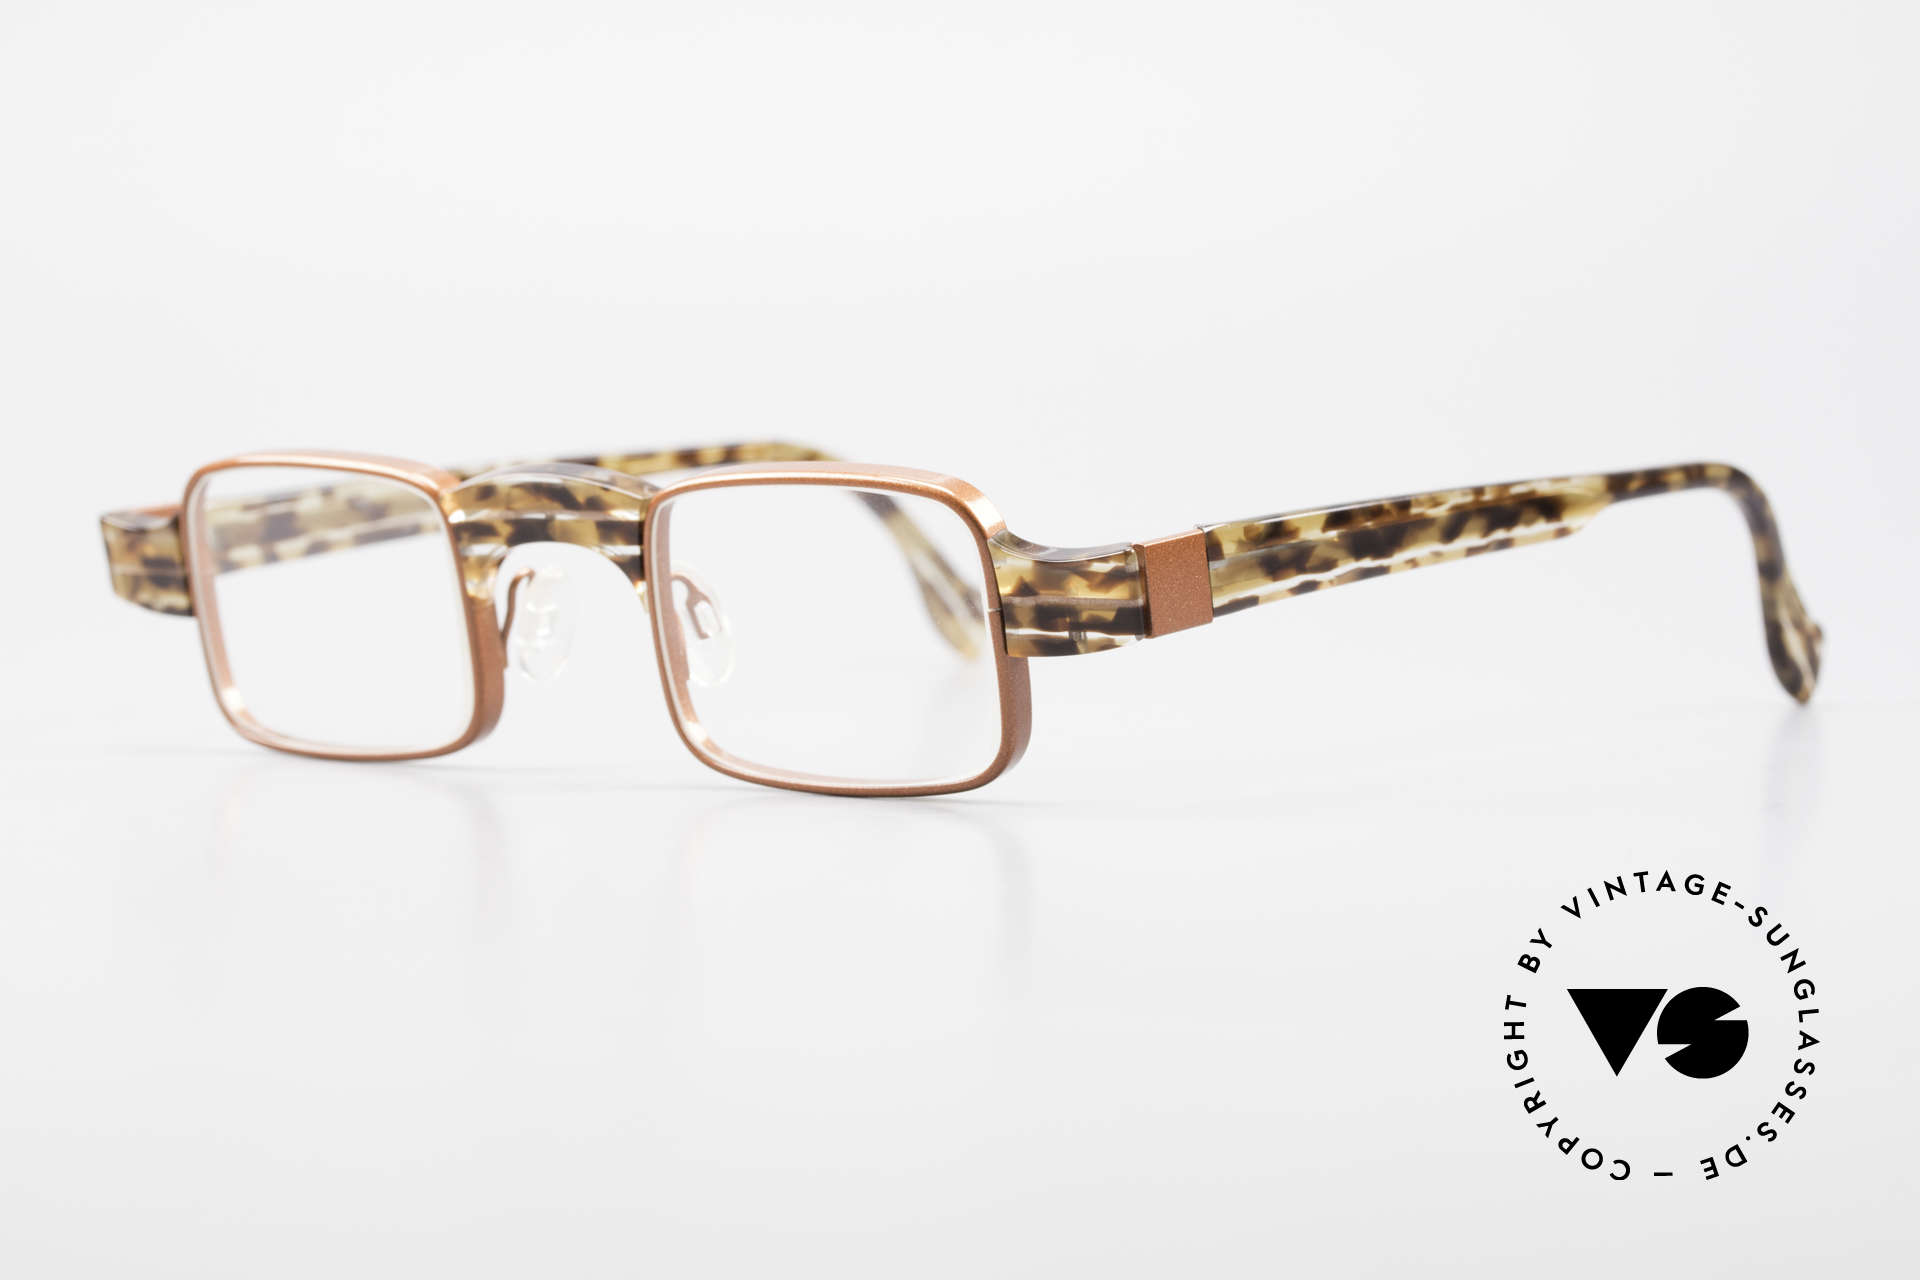 Theo Belgium Aphrodite Vintage Ladies Designer Specs, founded in 1989 as 'opposite pole' to the 'mainstream', Made for Women